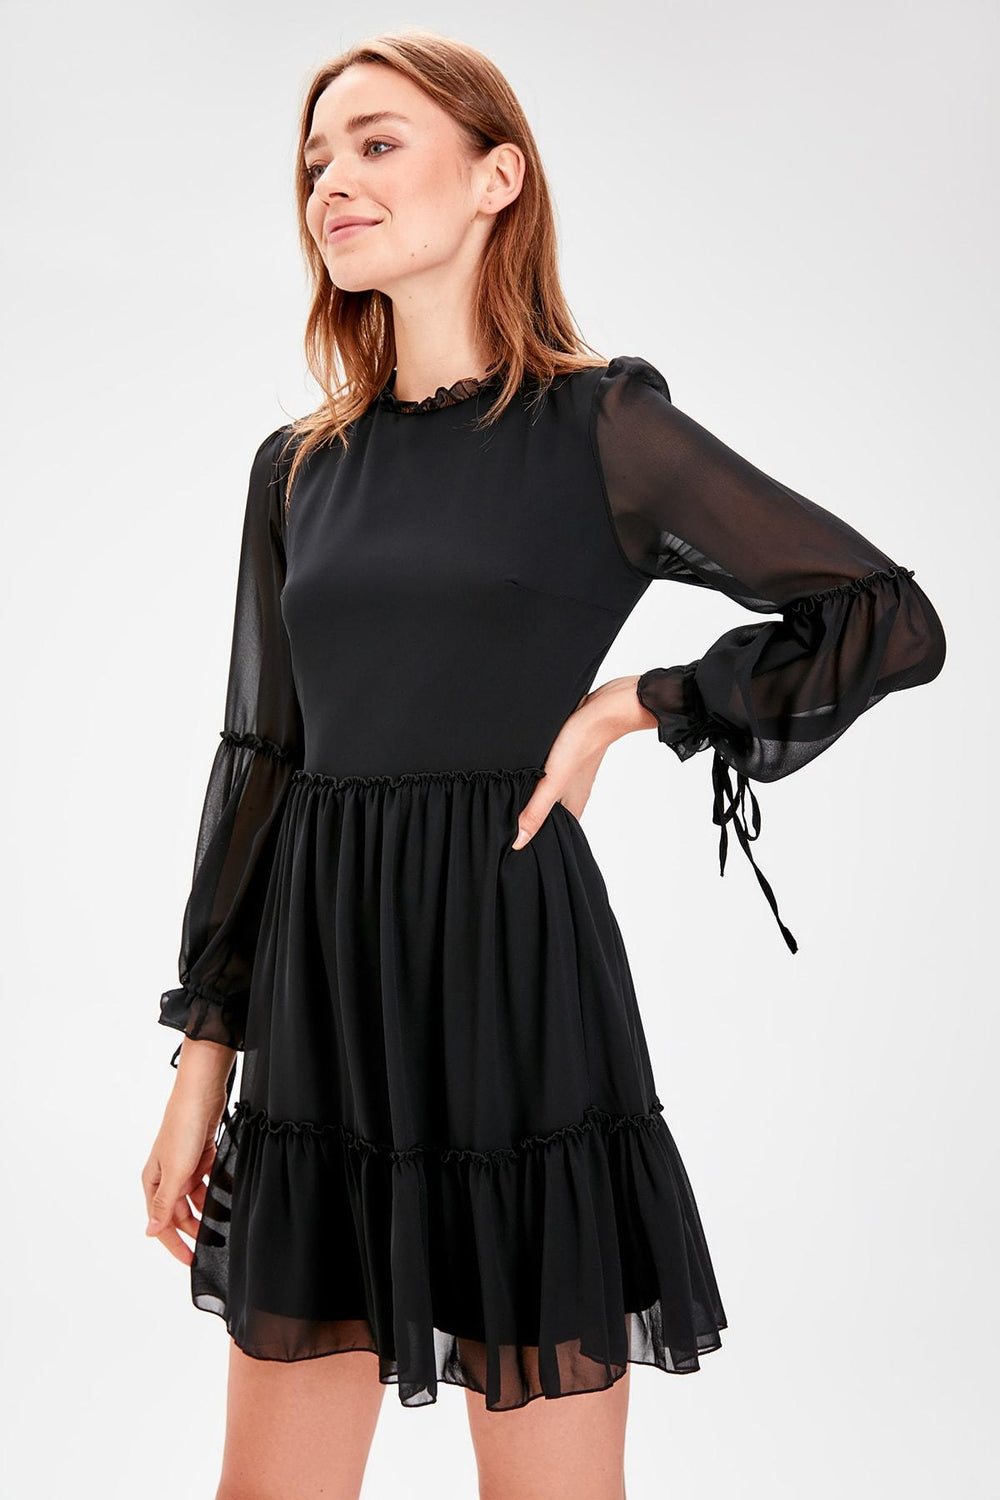 Black Shirred Dress - Top Maxy